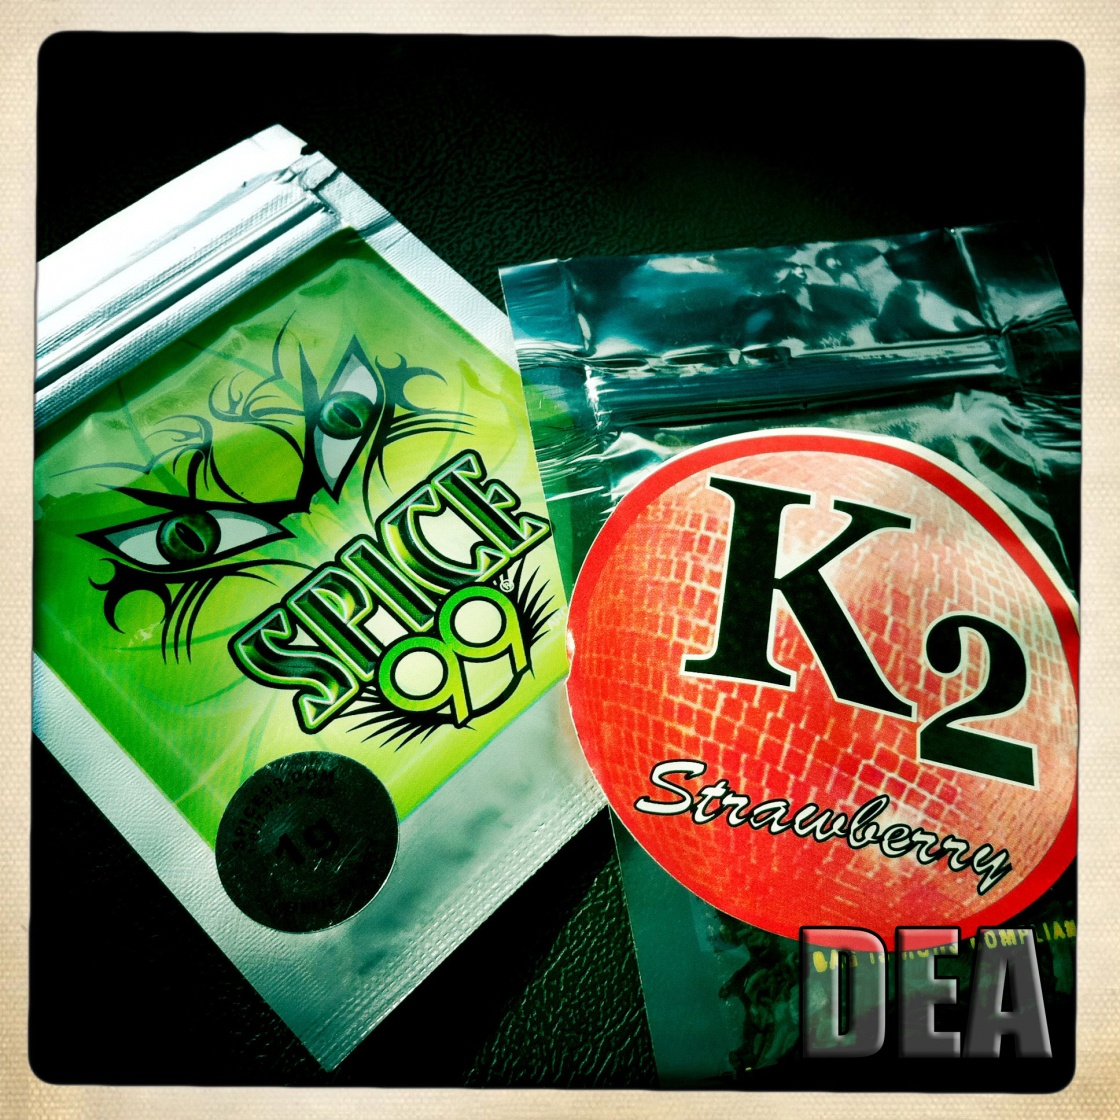 K2 poisonings